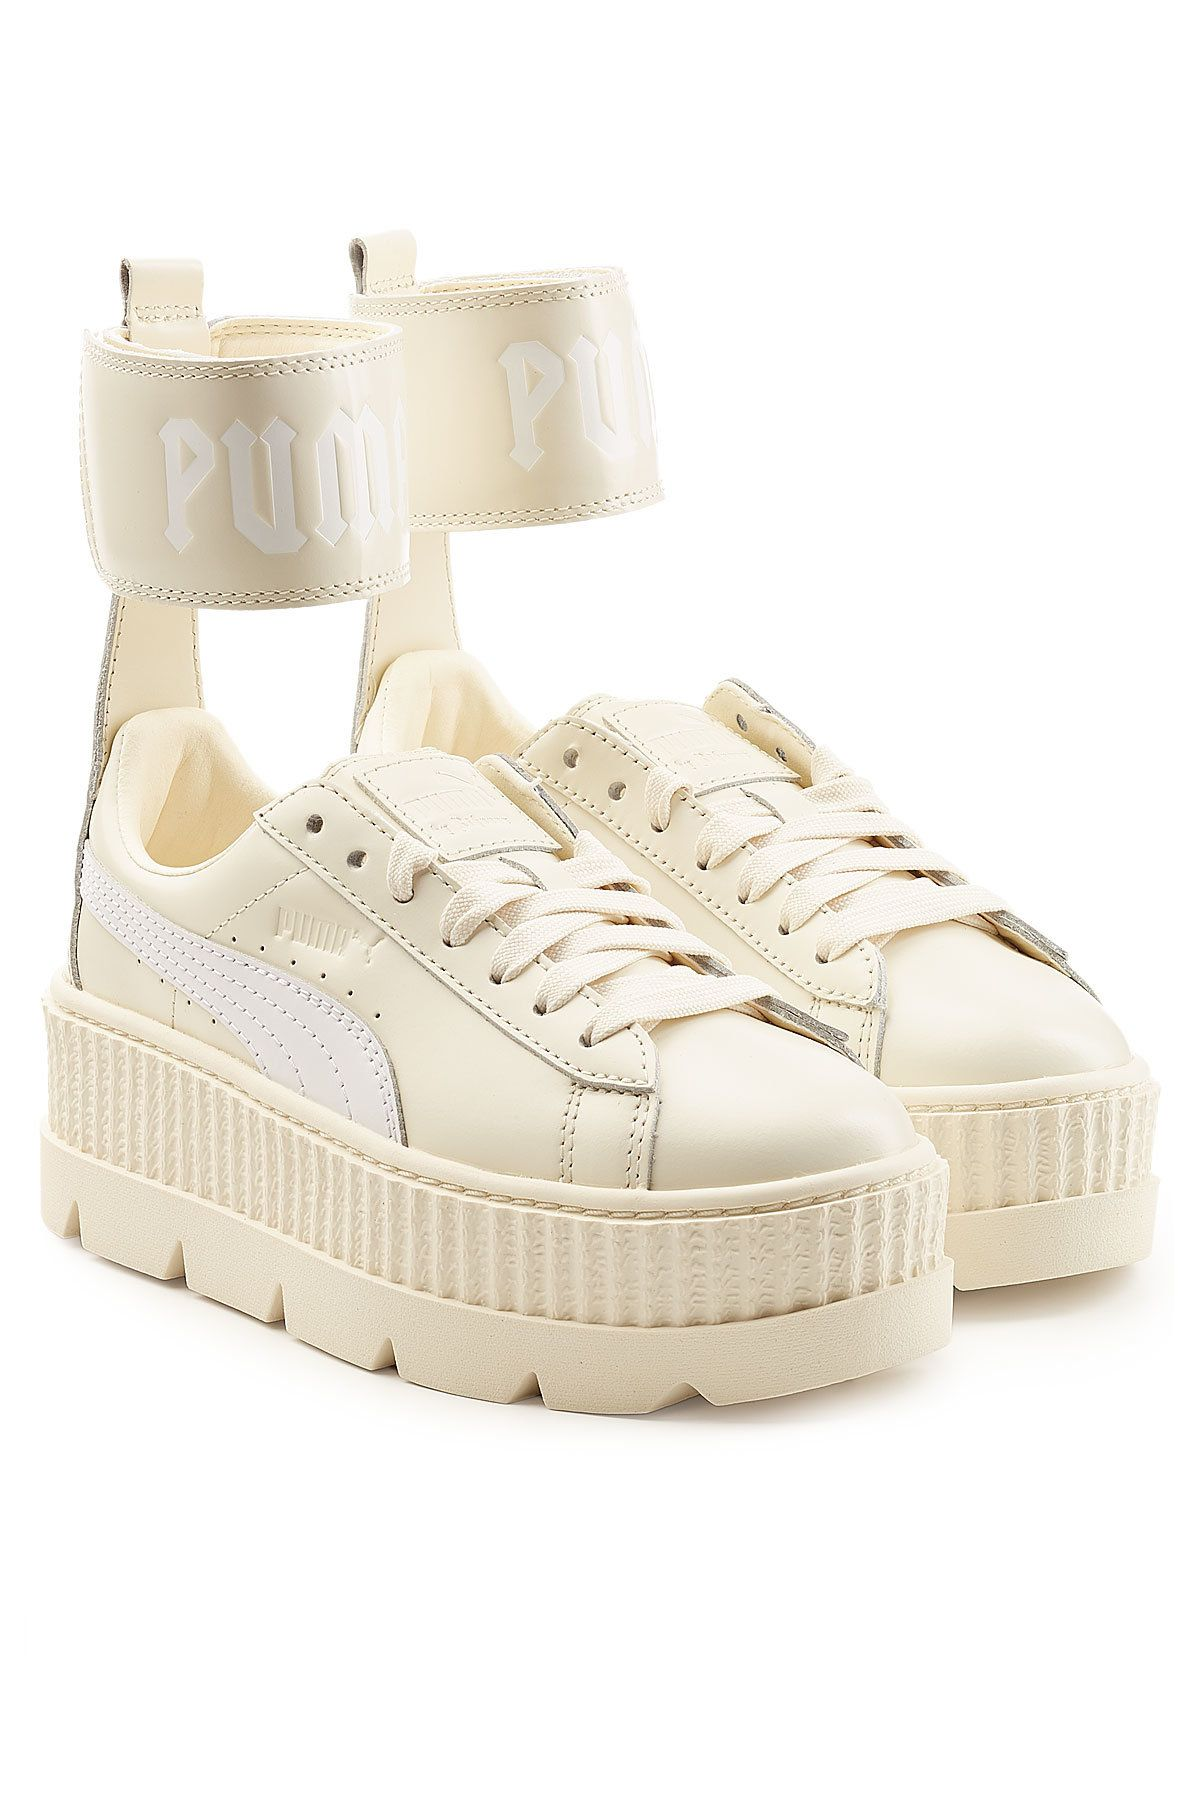 4f5c0d9a1ac7 FENTY X PUMA ANKLE STRAP LEATHER CREEPER SNEAKERS.  fentyxpuma  shoes